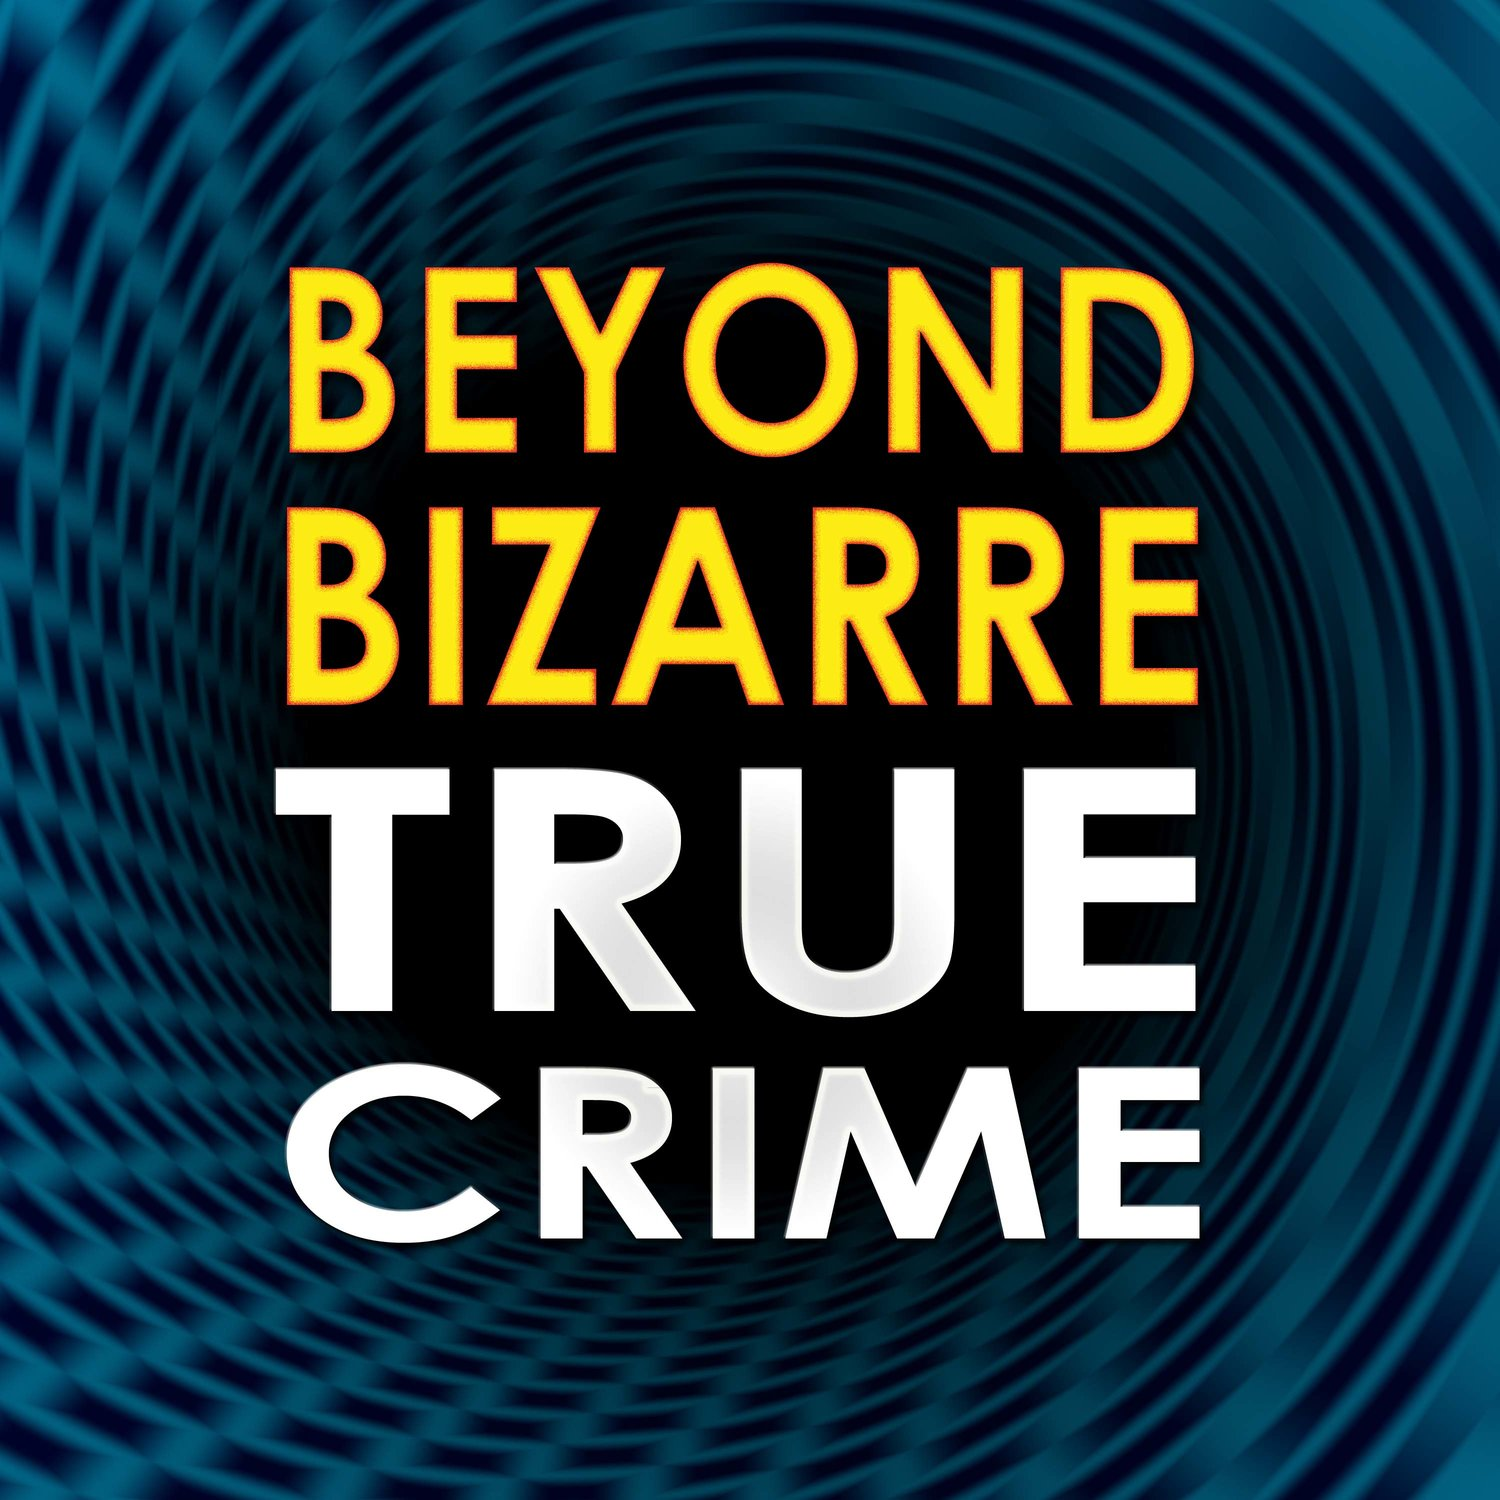 Beyond Bizarre True Crime